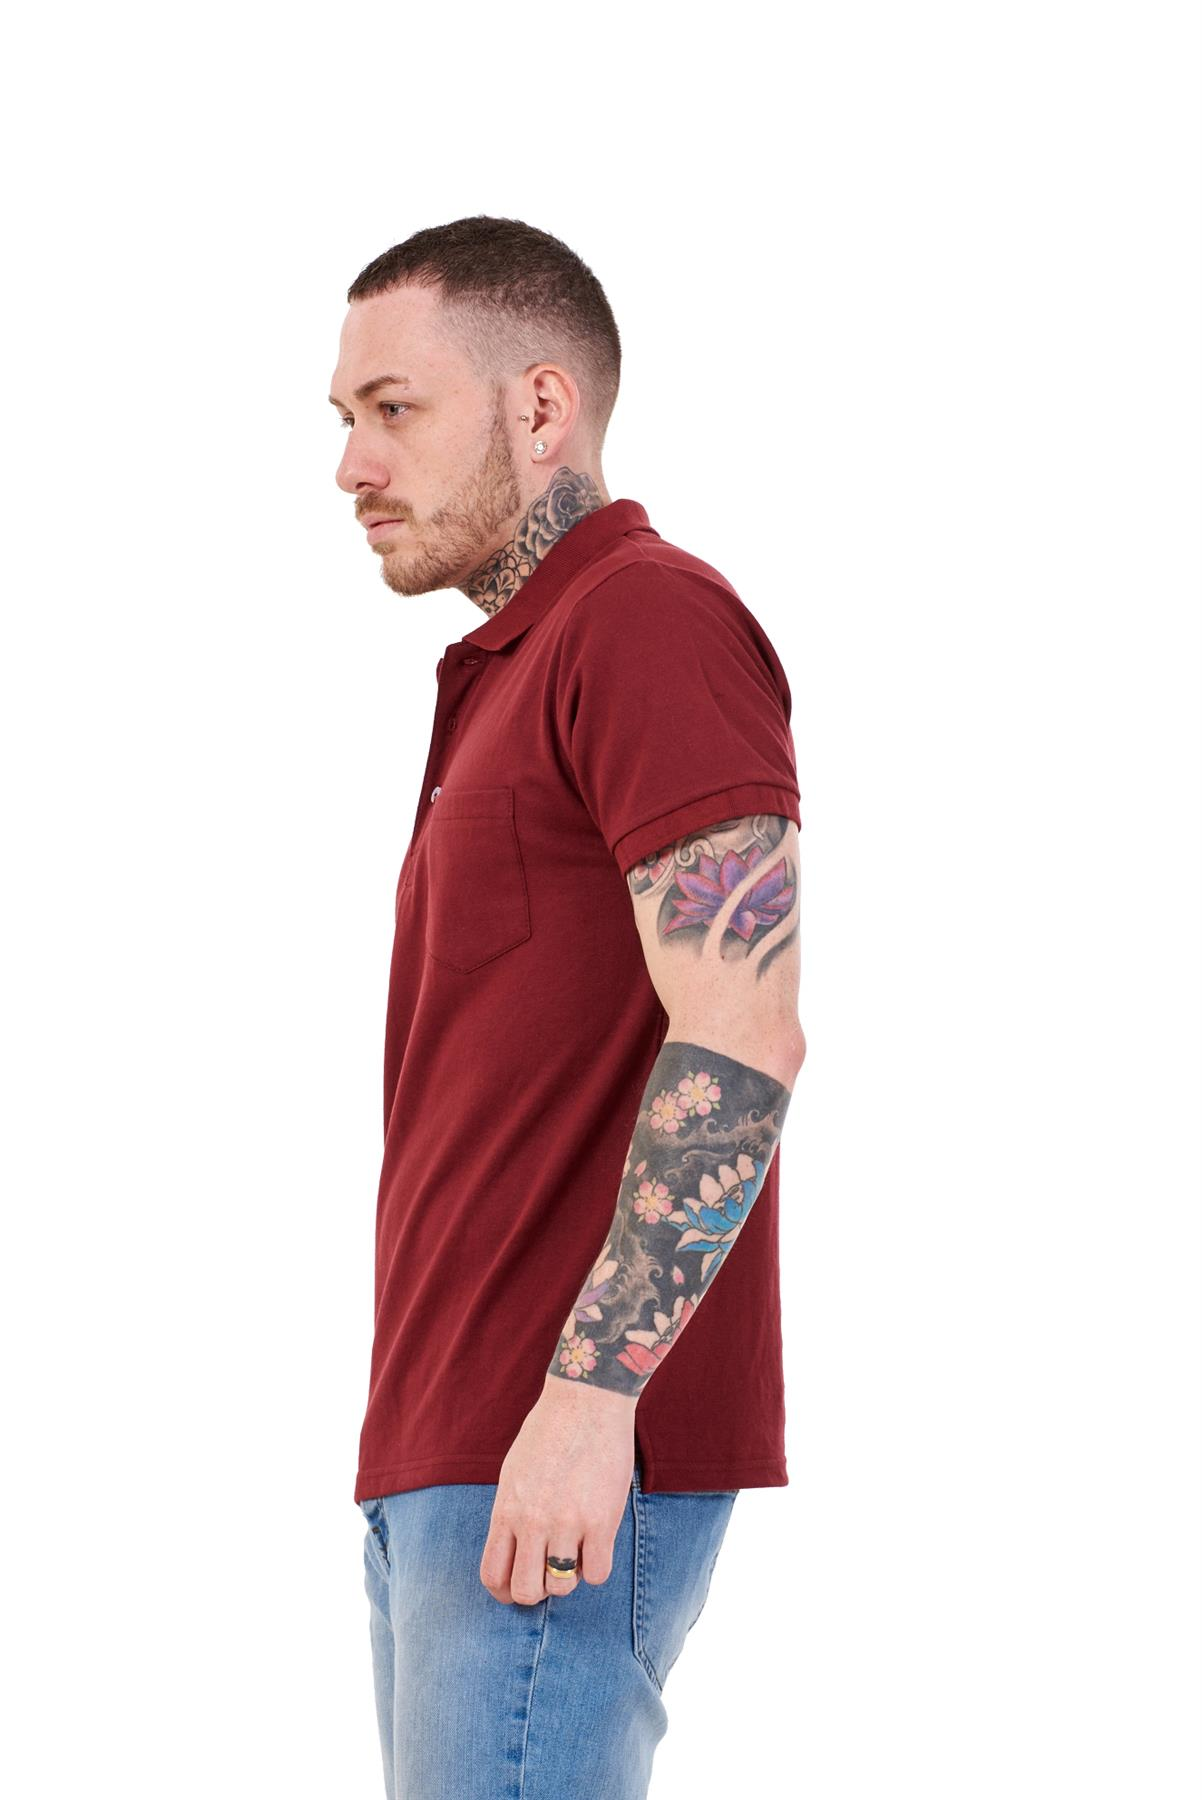 Mens-Cotton-T-Shirts-Regular-fit-Plain-Polo-Pocket-Casual-Formal-Shirt-Top-M-XXL thumbnail 8